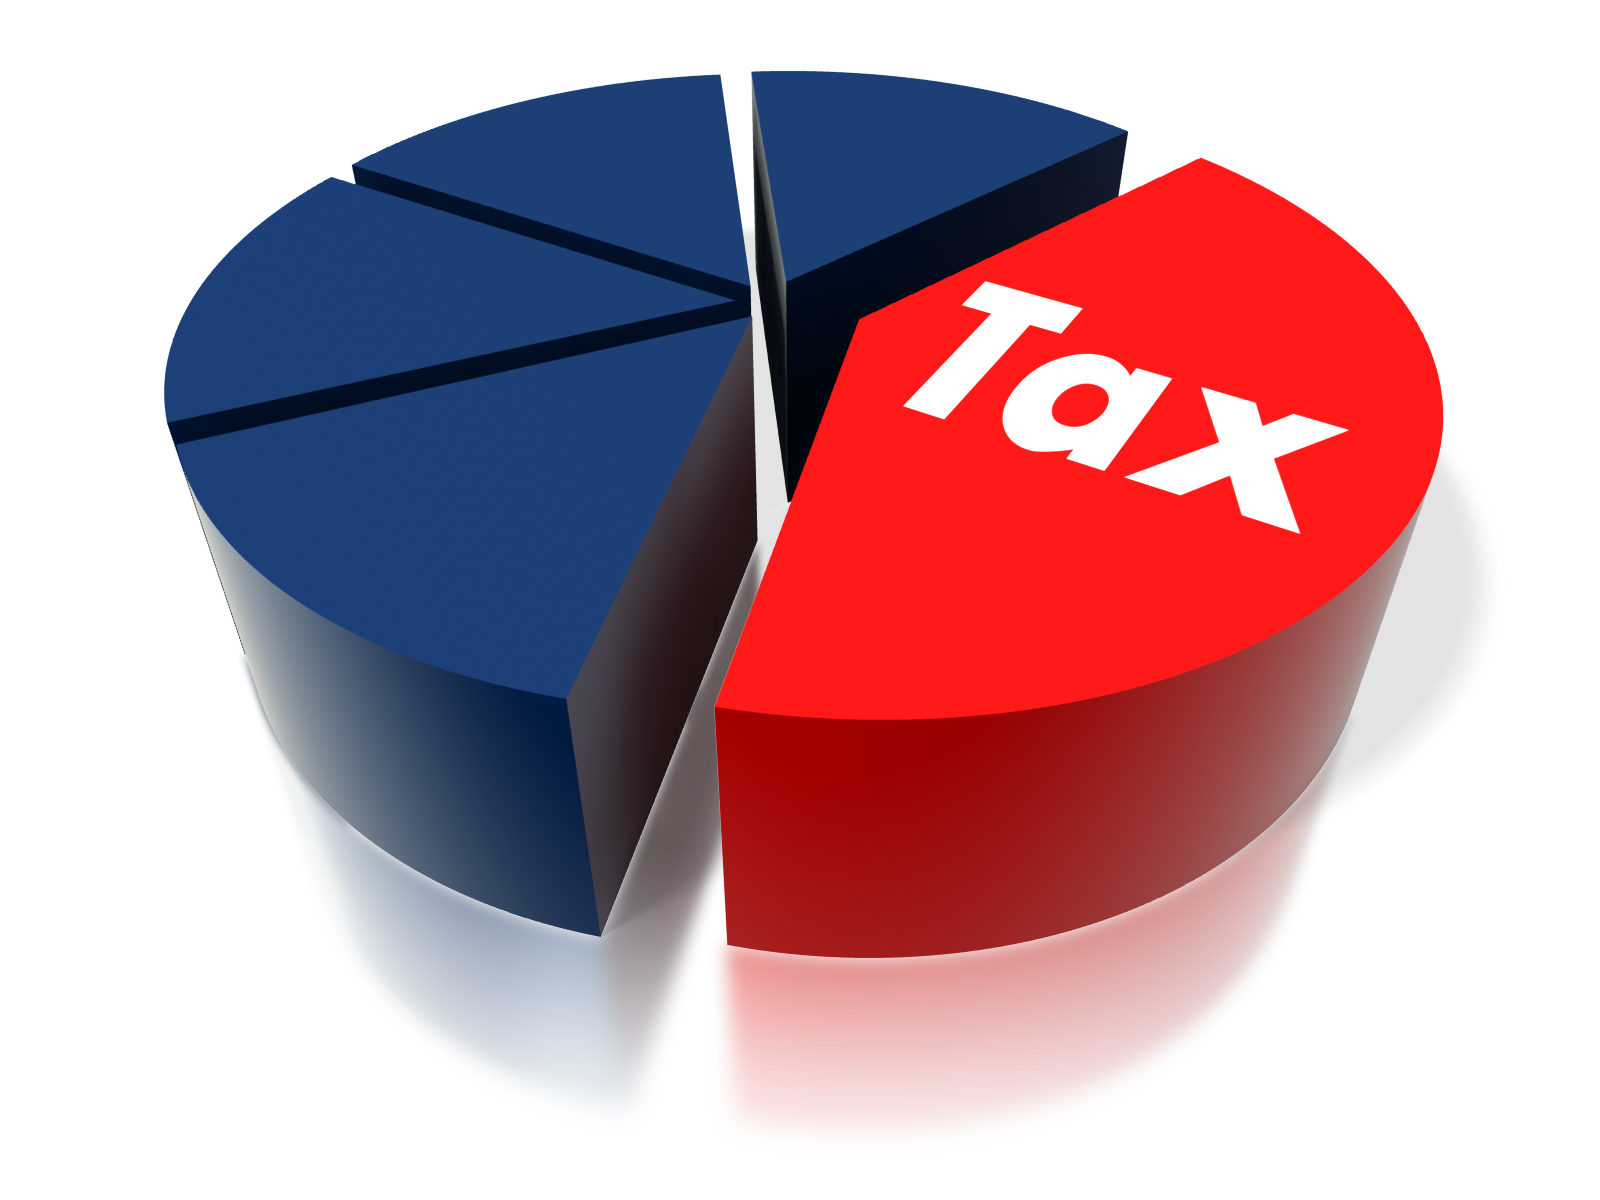 Brand Tax Day Faridabad Free Clipart HQ PNG Image